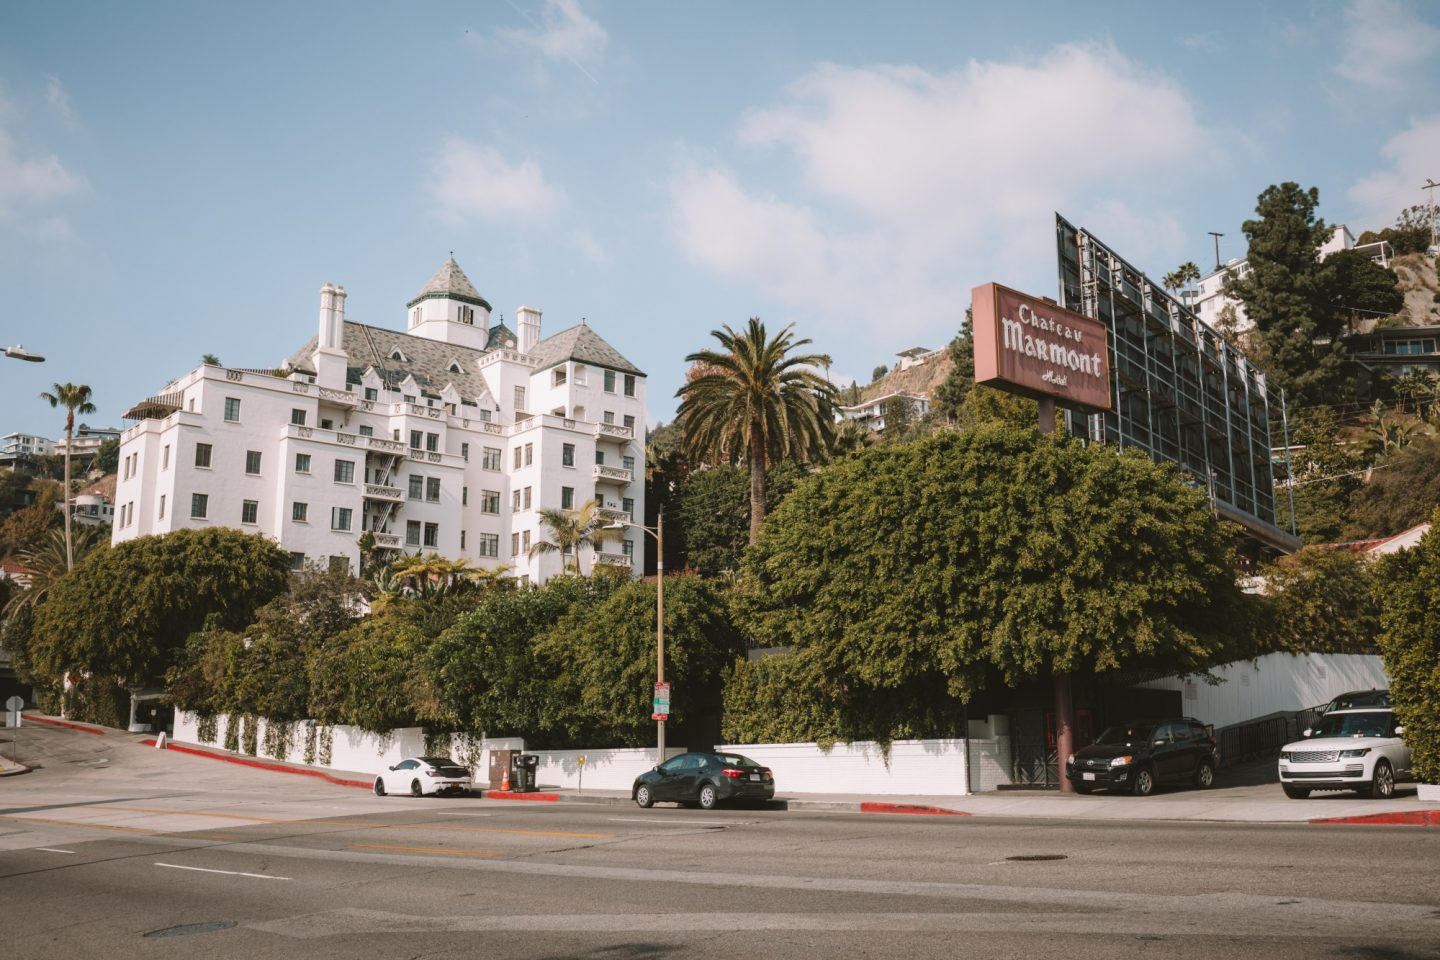 Chateau Marmont West Hollywood - Blondie Baby blog voyages